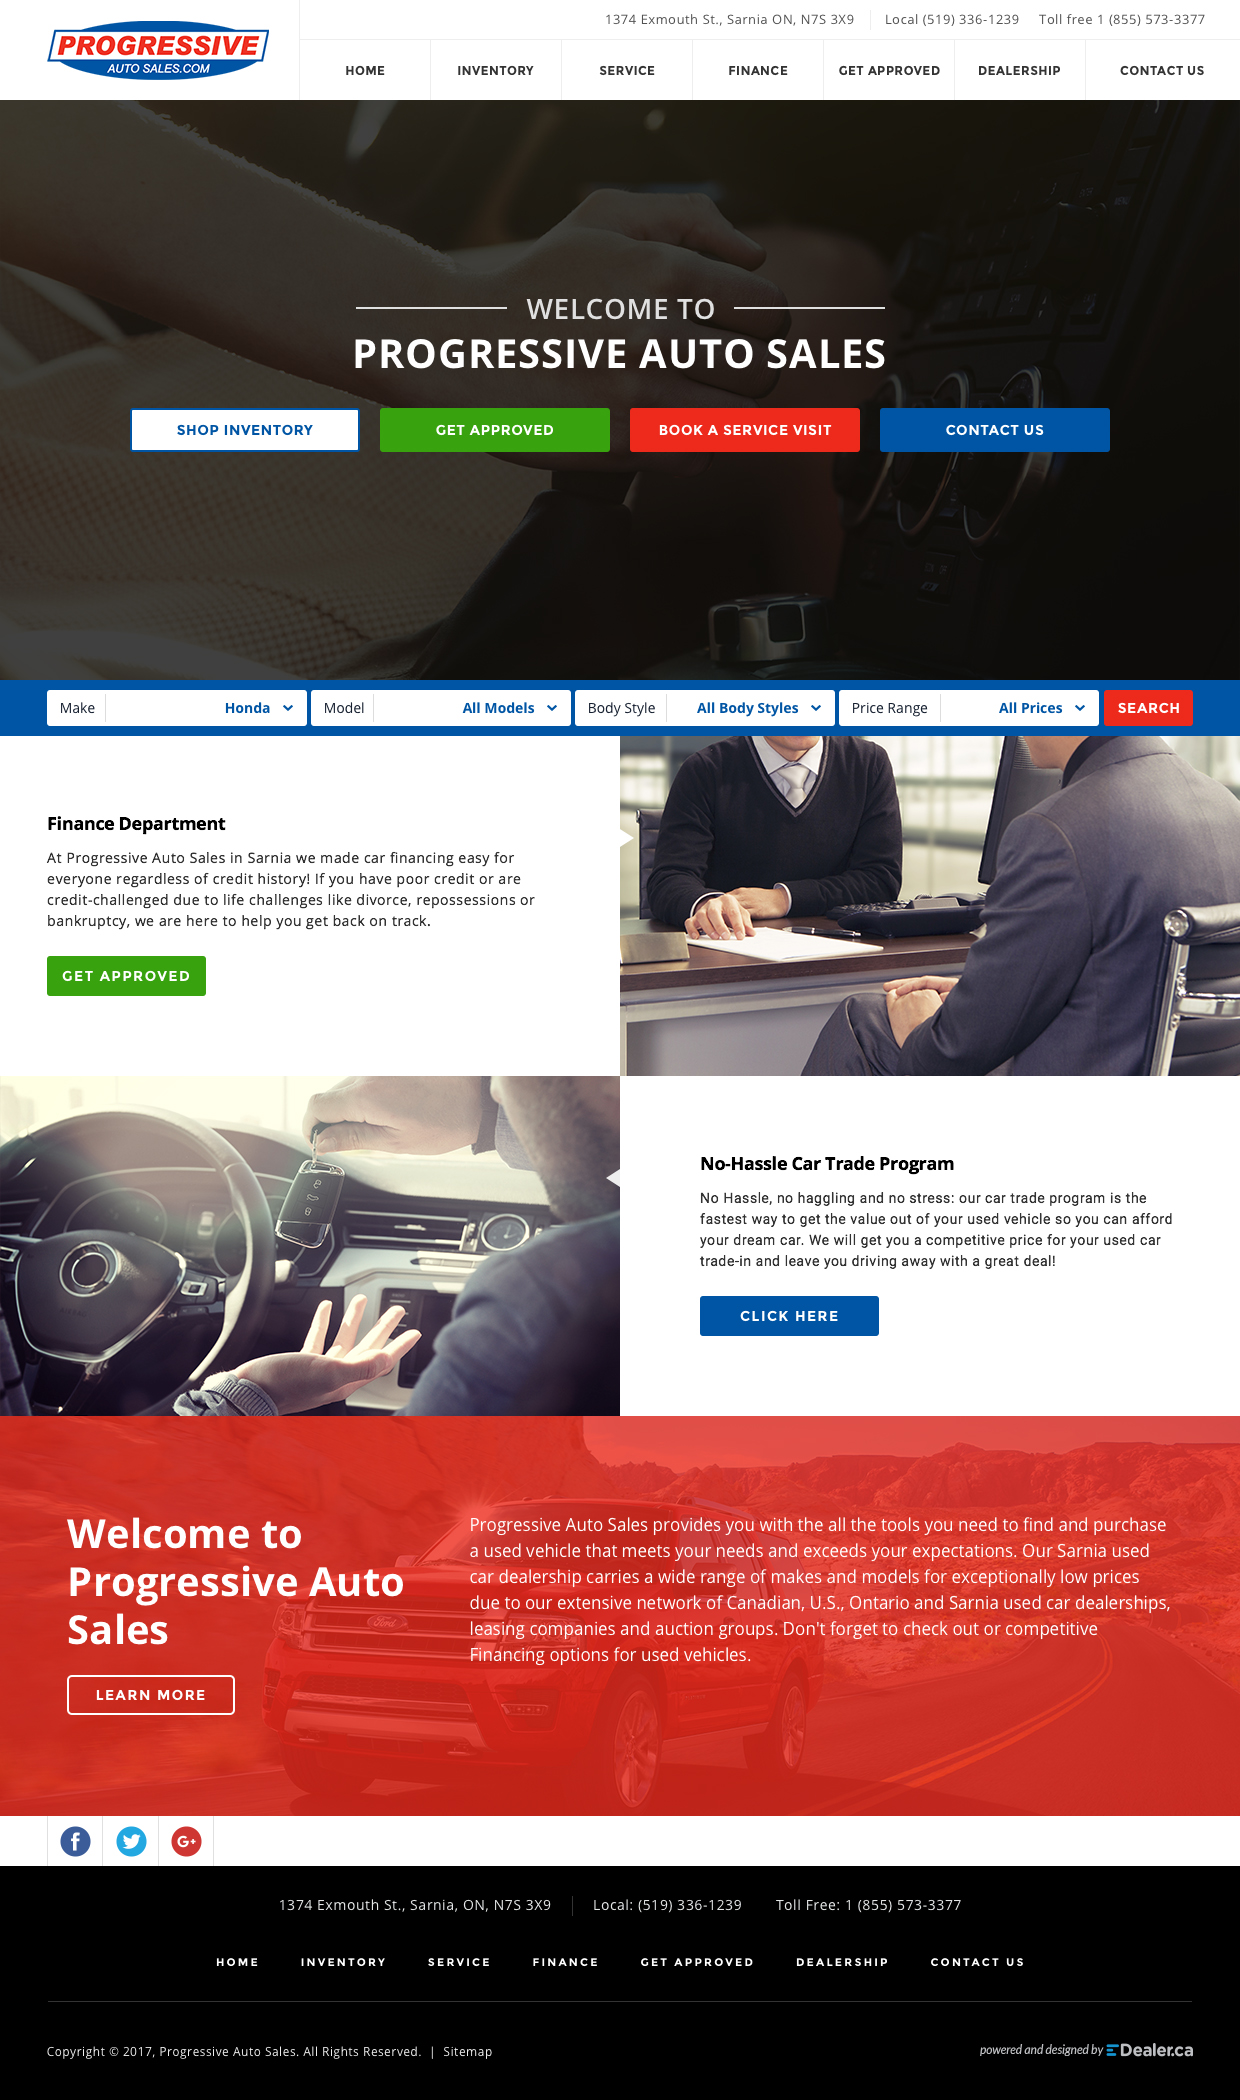 ProgressiveAutoSales-1240px-final